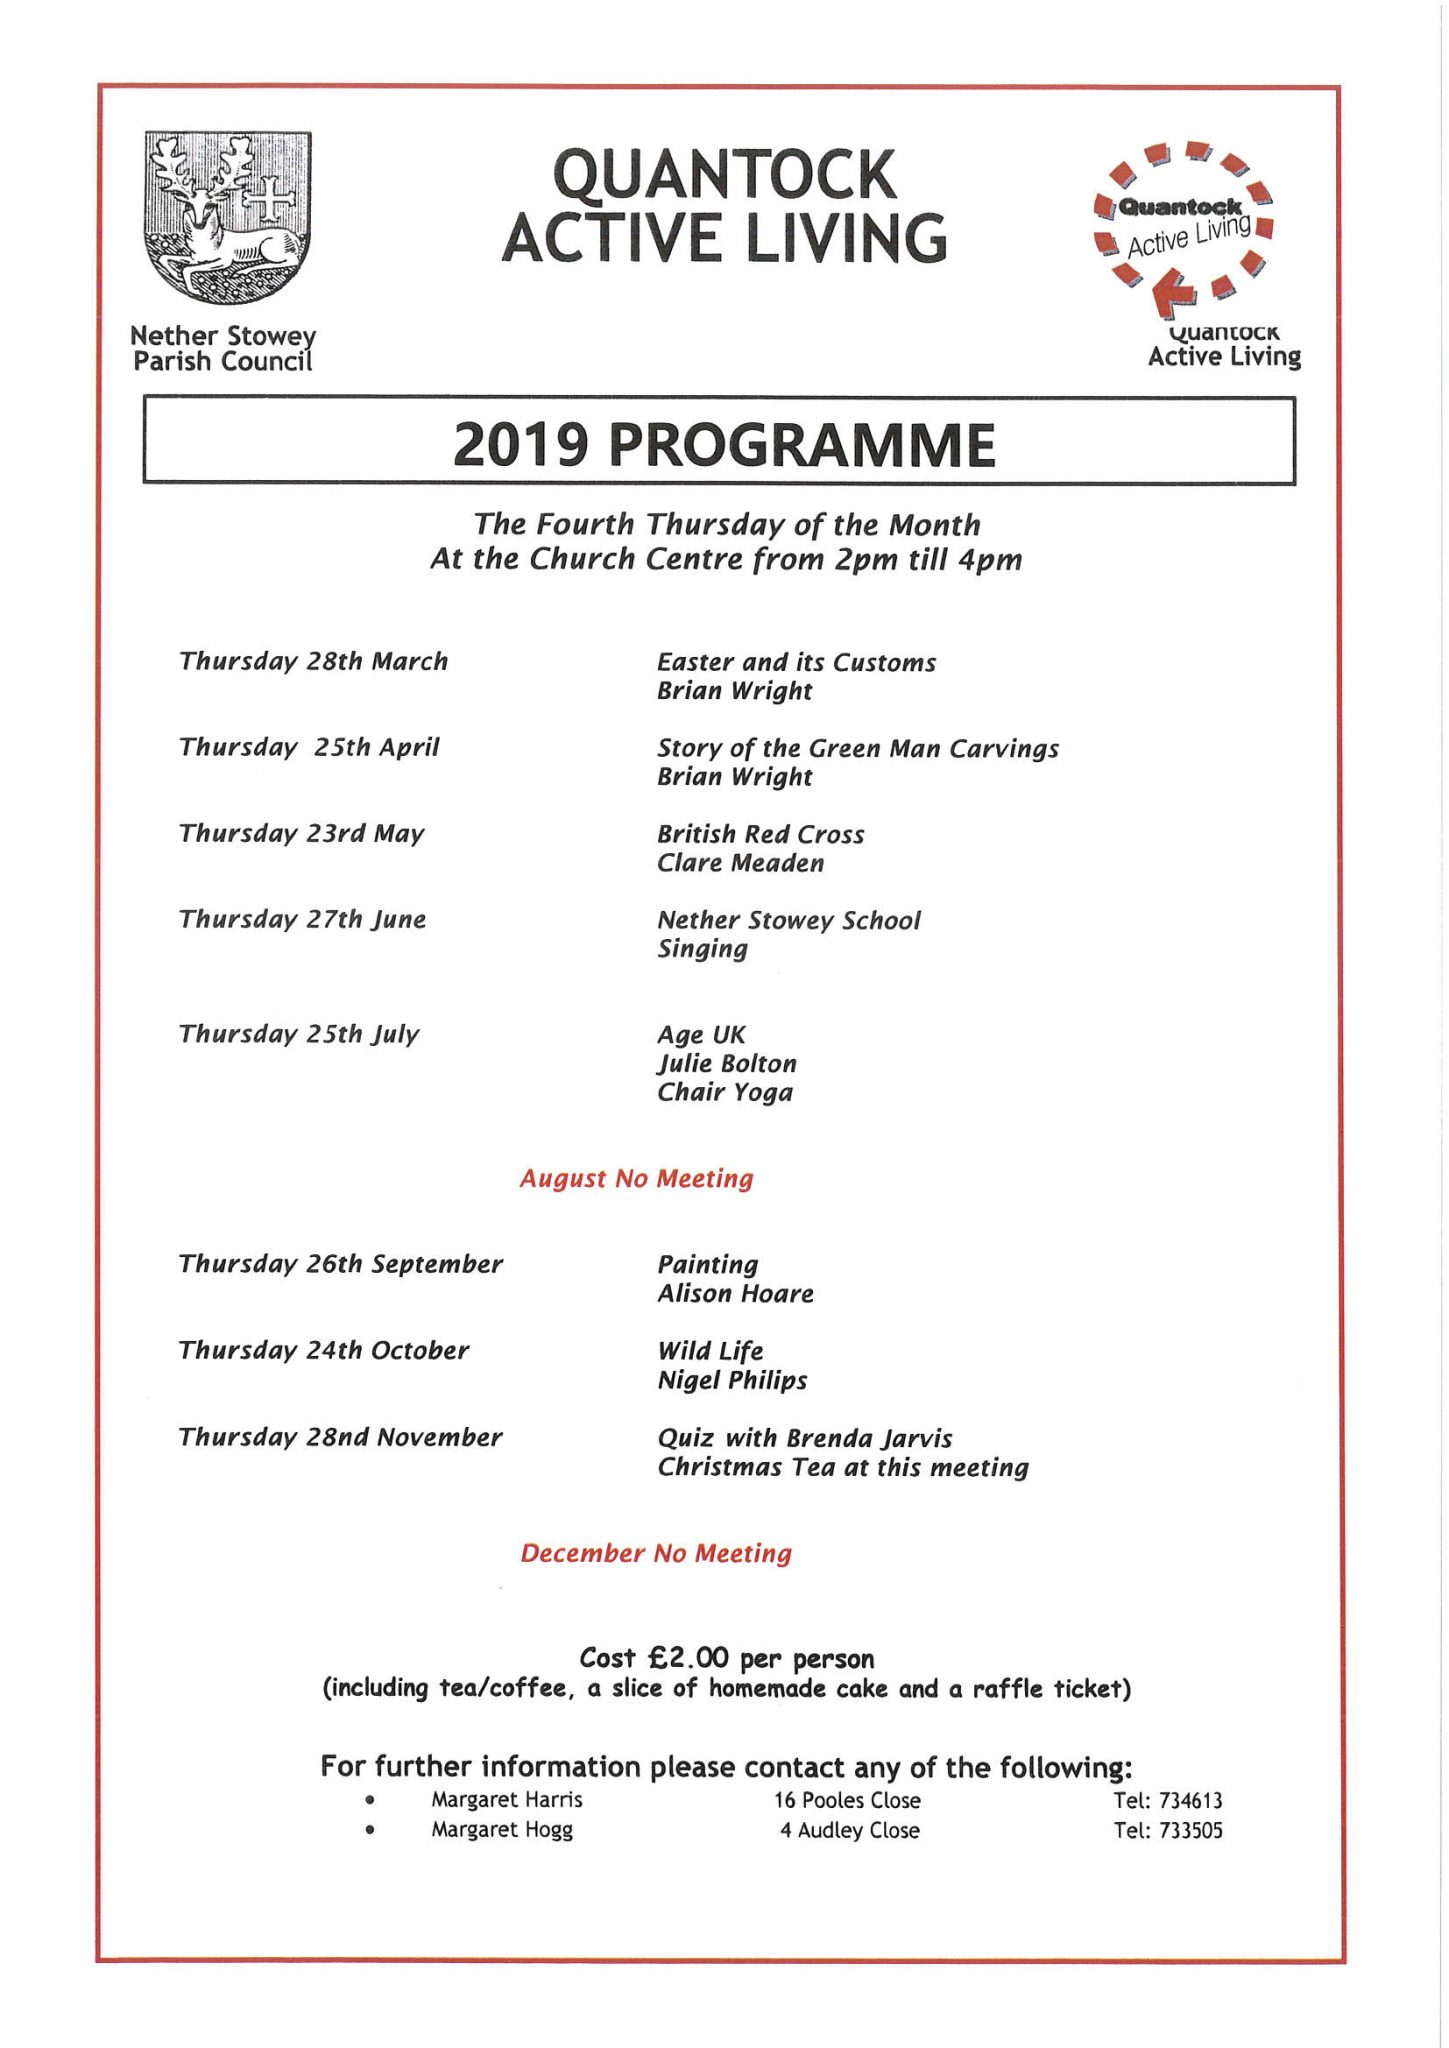 Quantock Active Living 2019 Programme @ St Mary's Church Centre